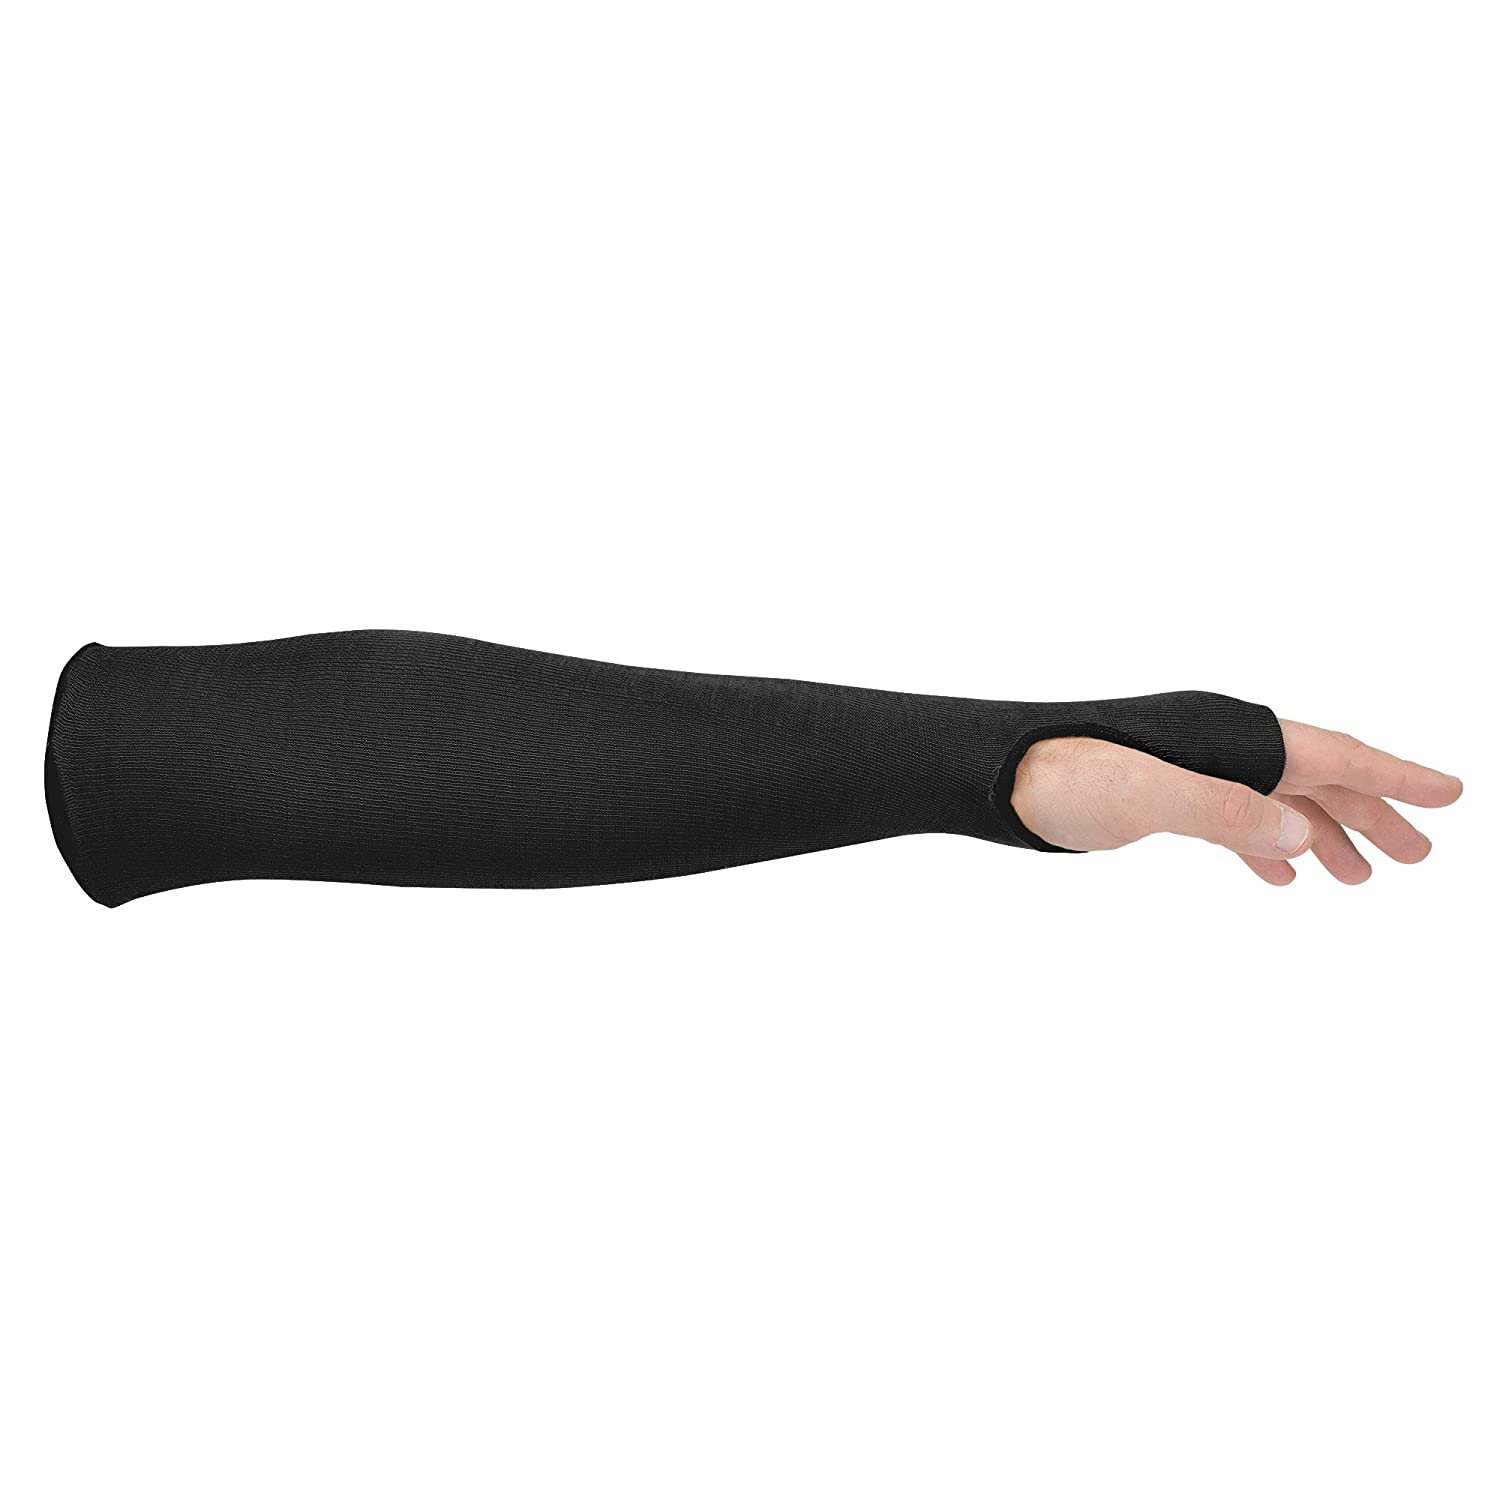 Sold By The Each 14 with Thumbslot Cut Resistant Black Kevlar Sleeve Thermal Protection